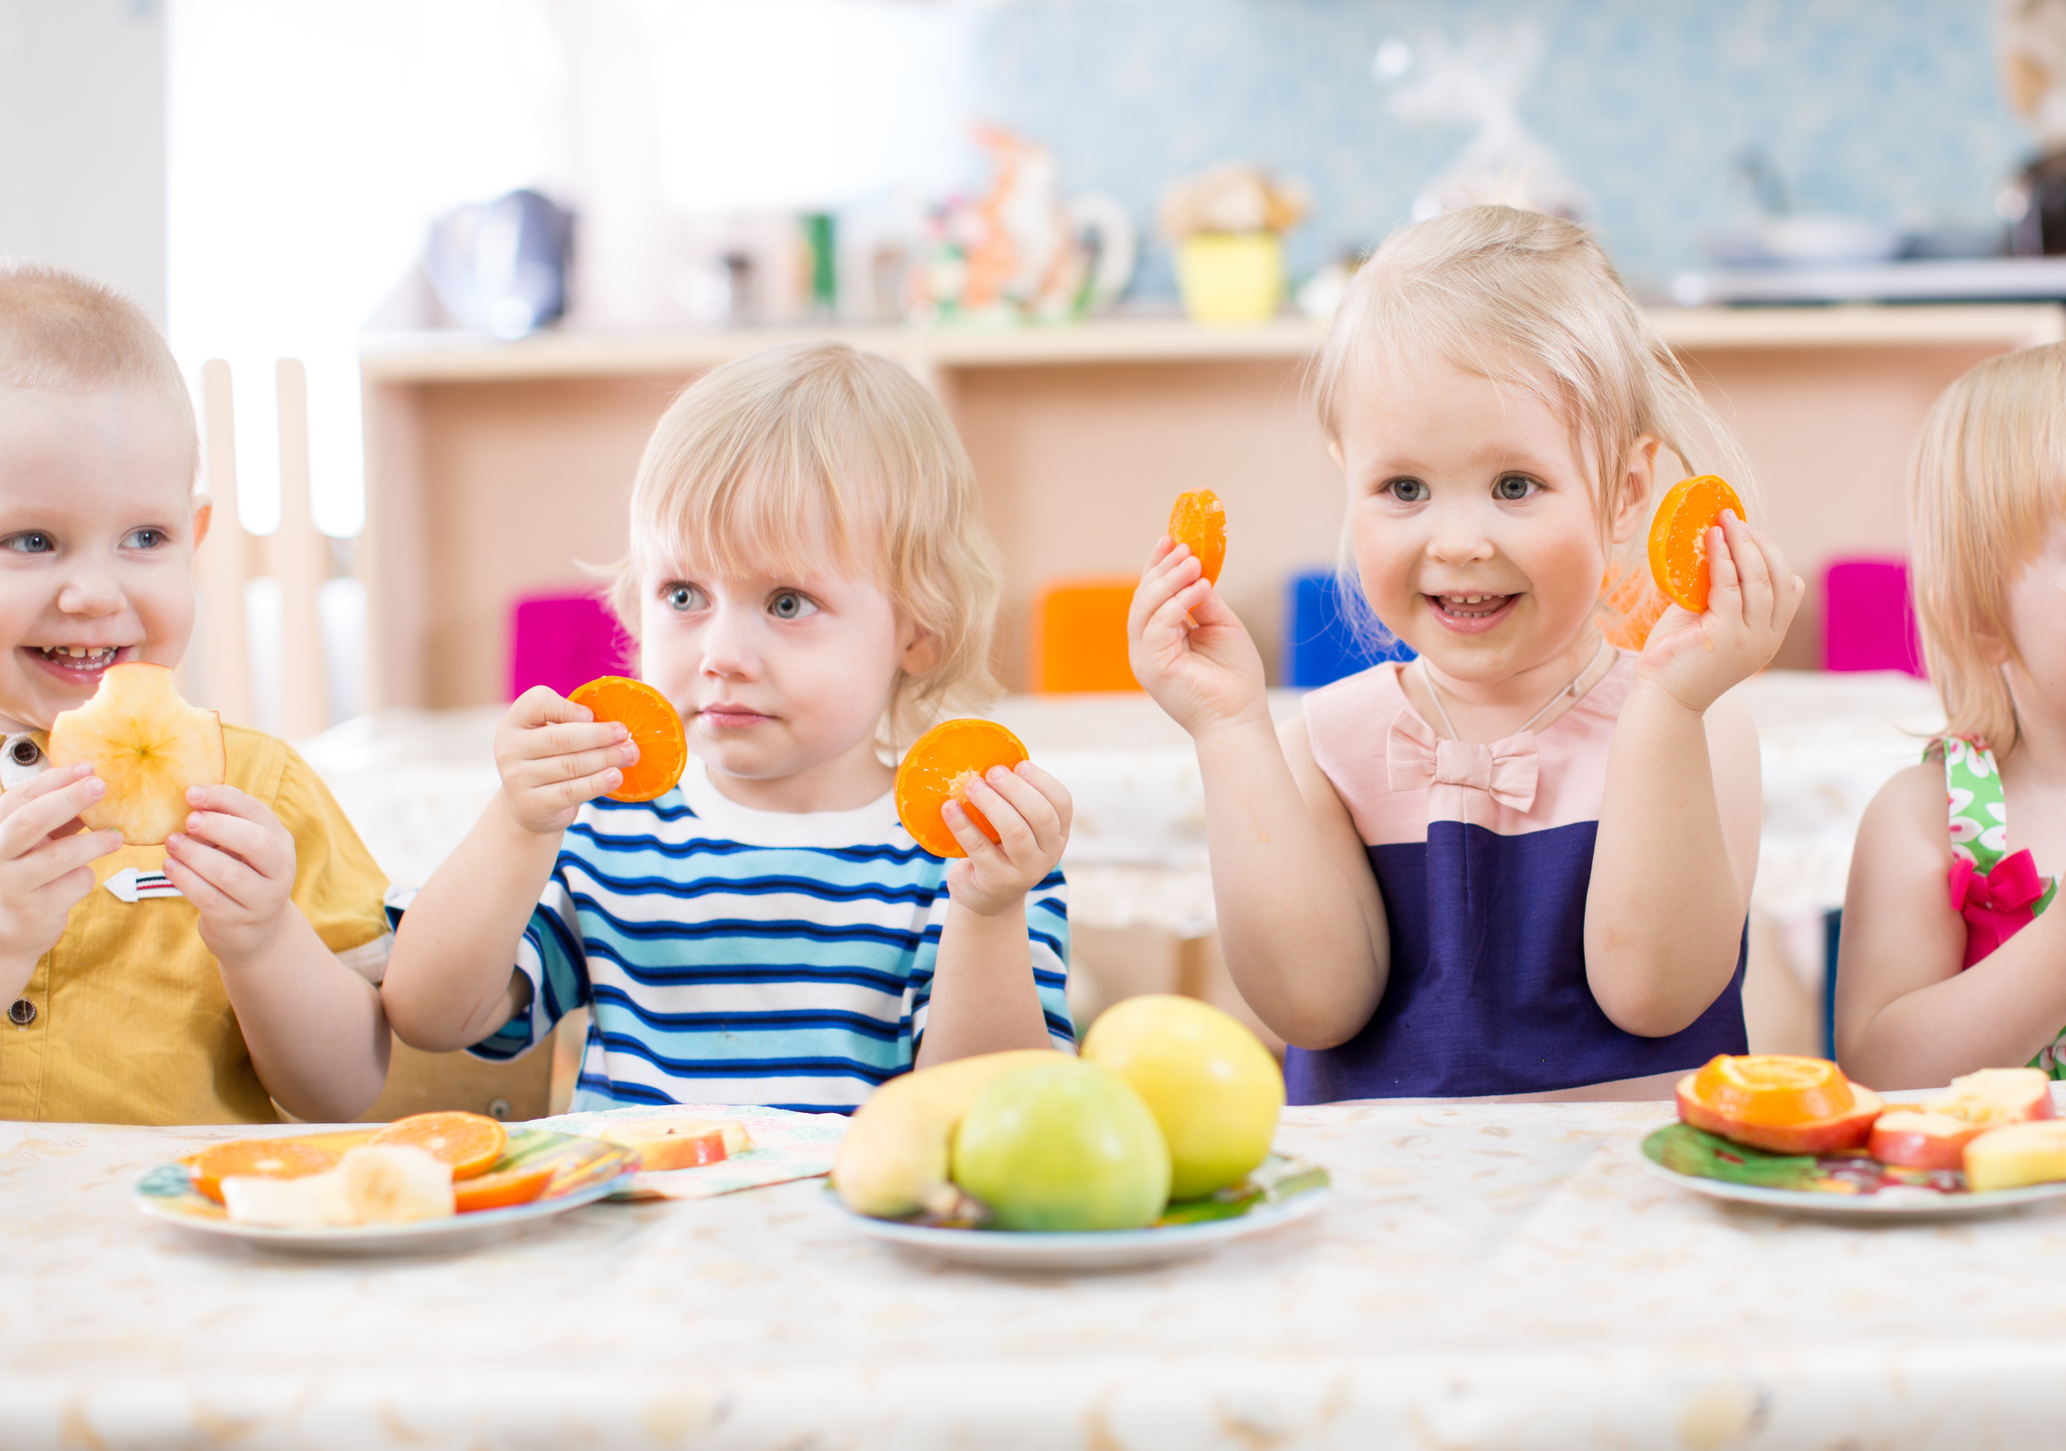 10-State Program Increases Healthy Eating and Physical Activity Best Practices at Child Care Facilities